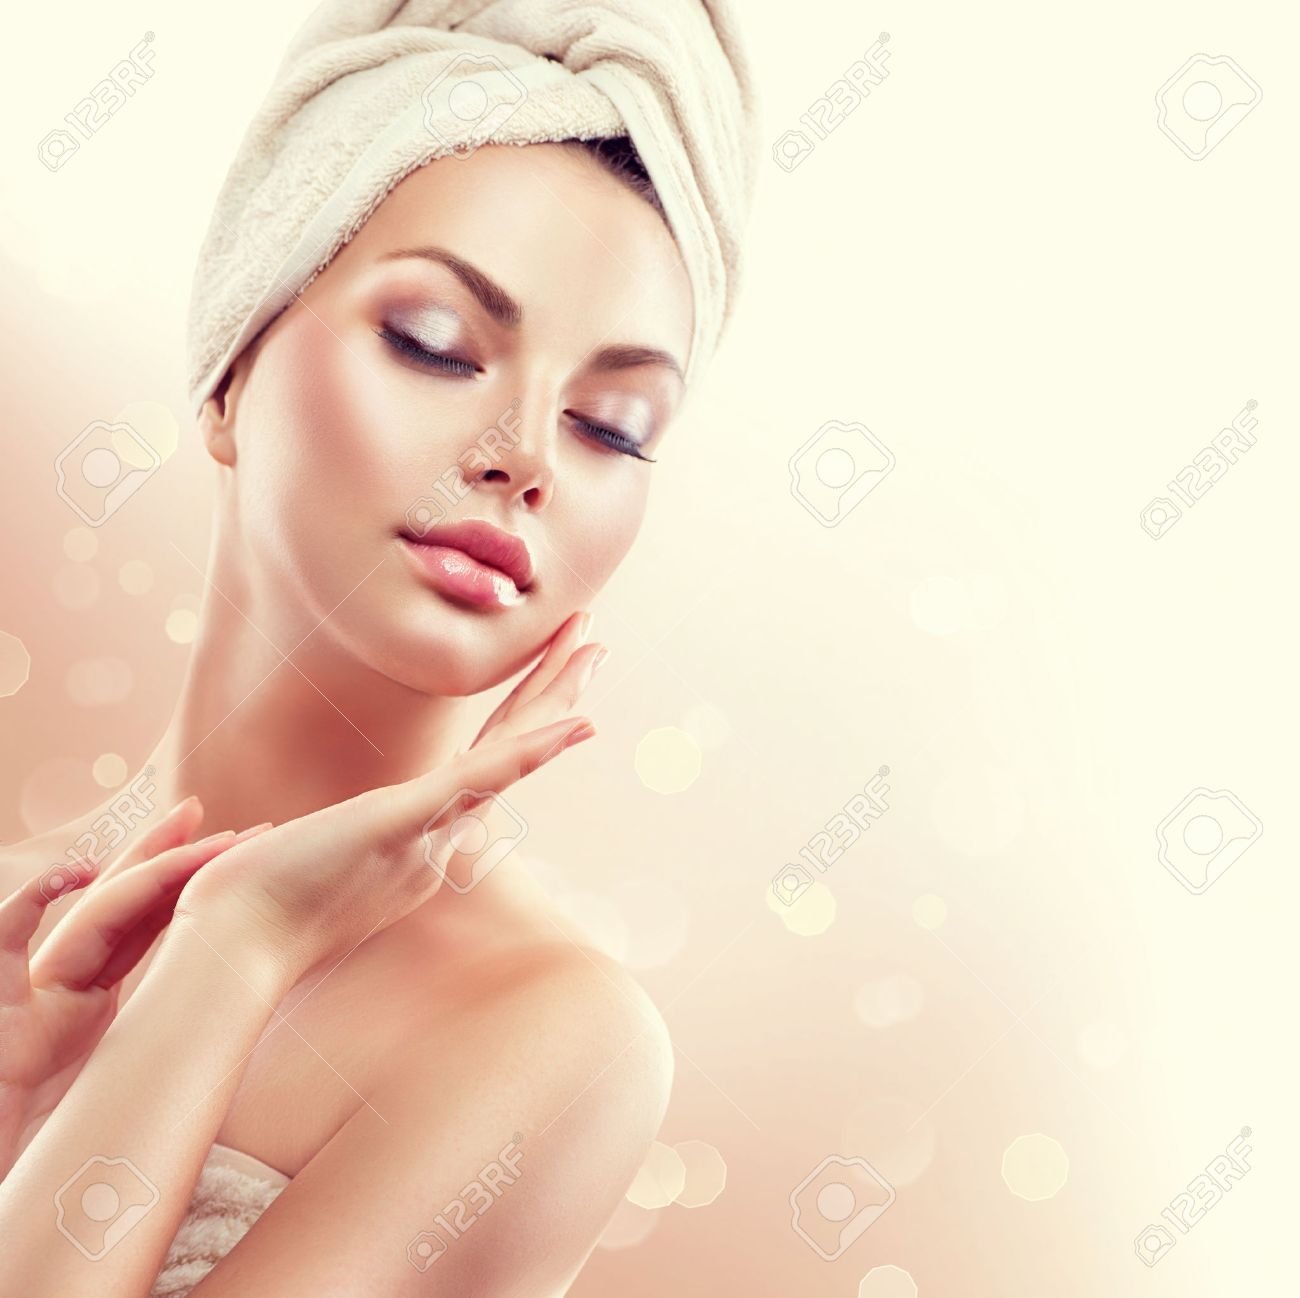 Spa woman. Beautiful girl after bath touching her face Stock Photo - 48318534